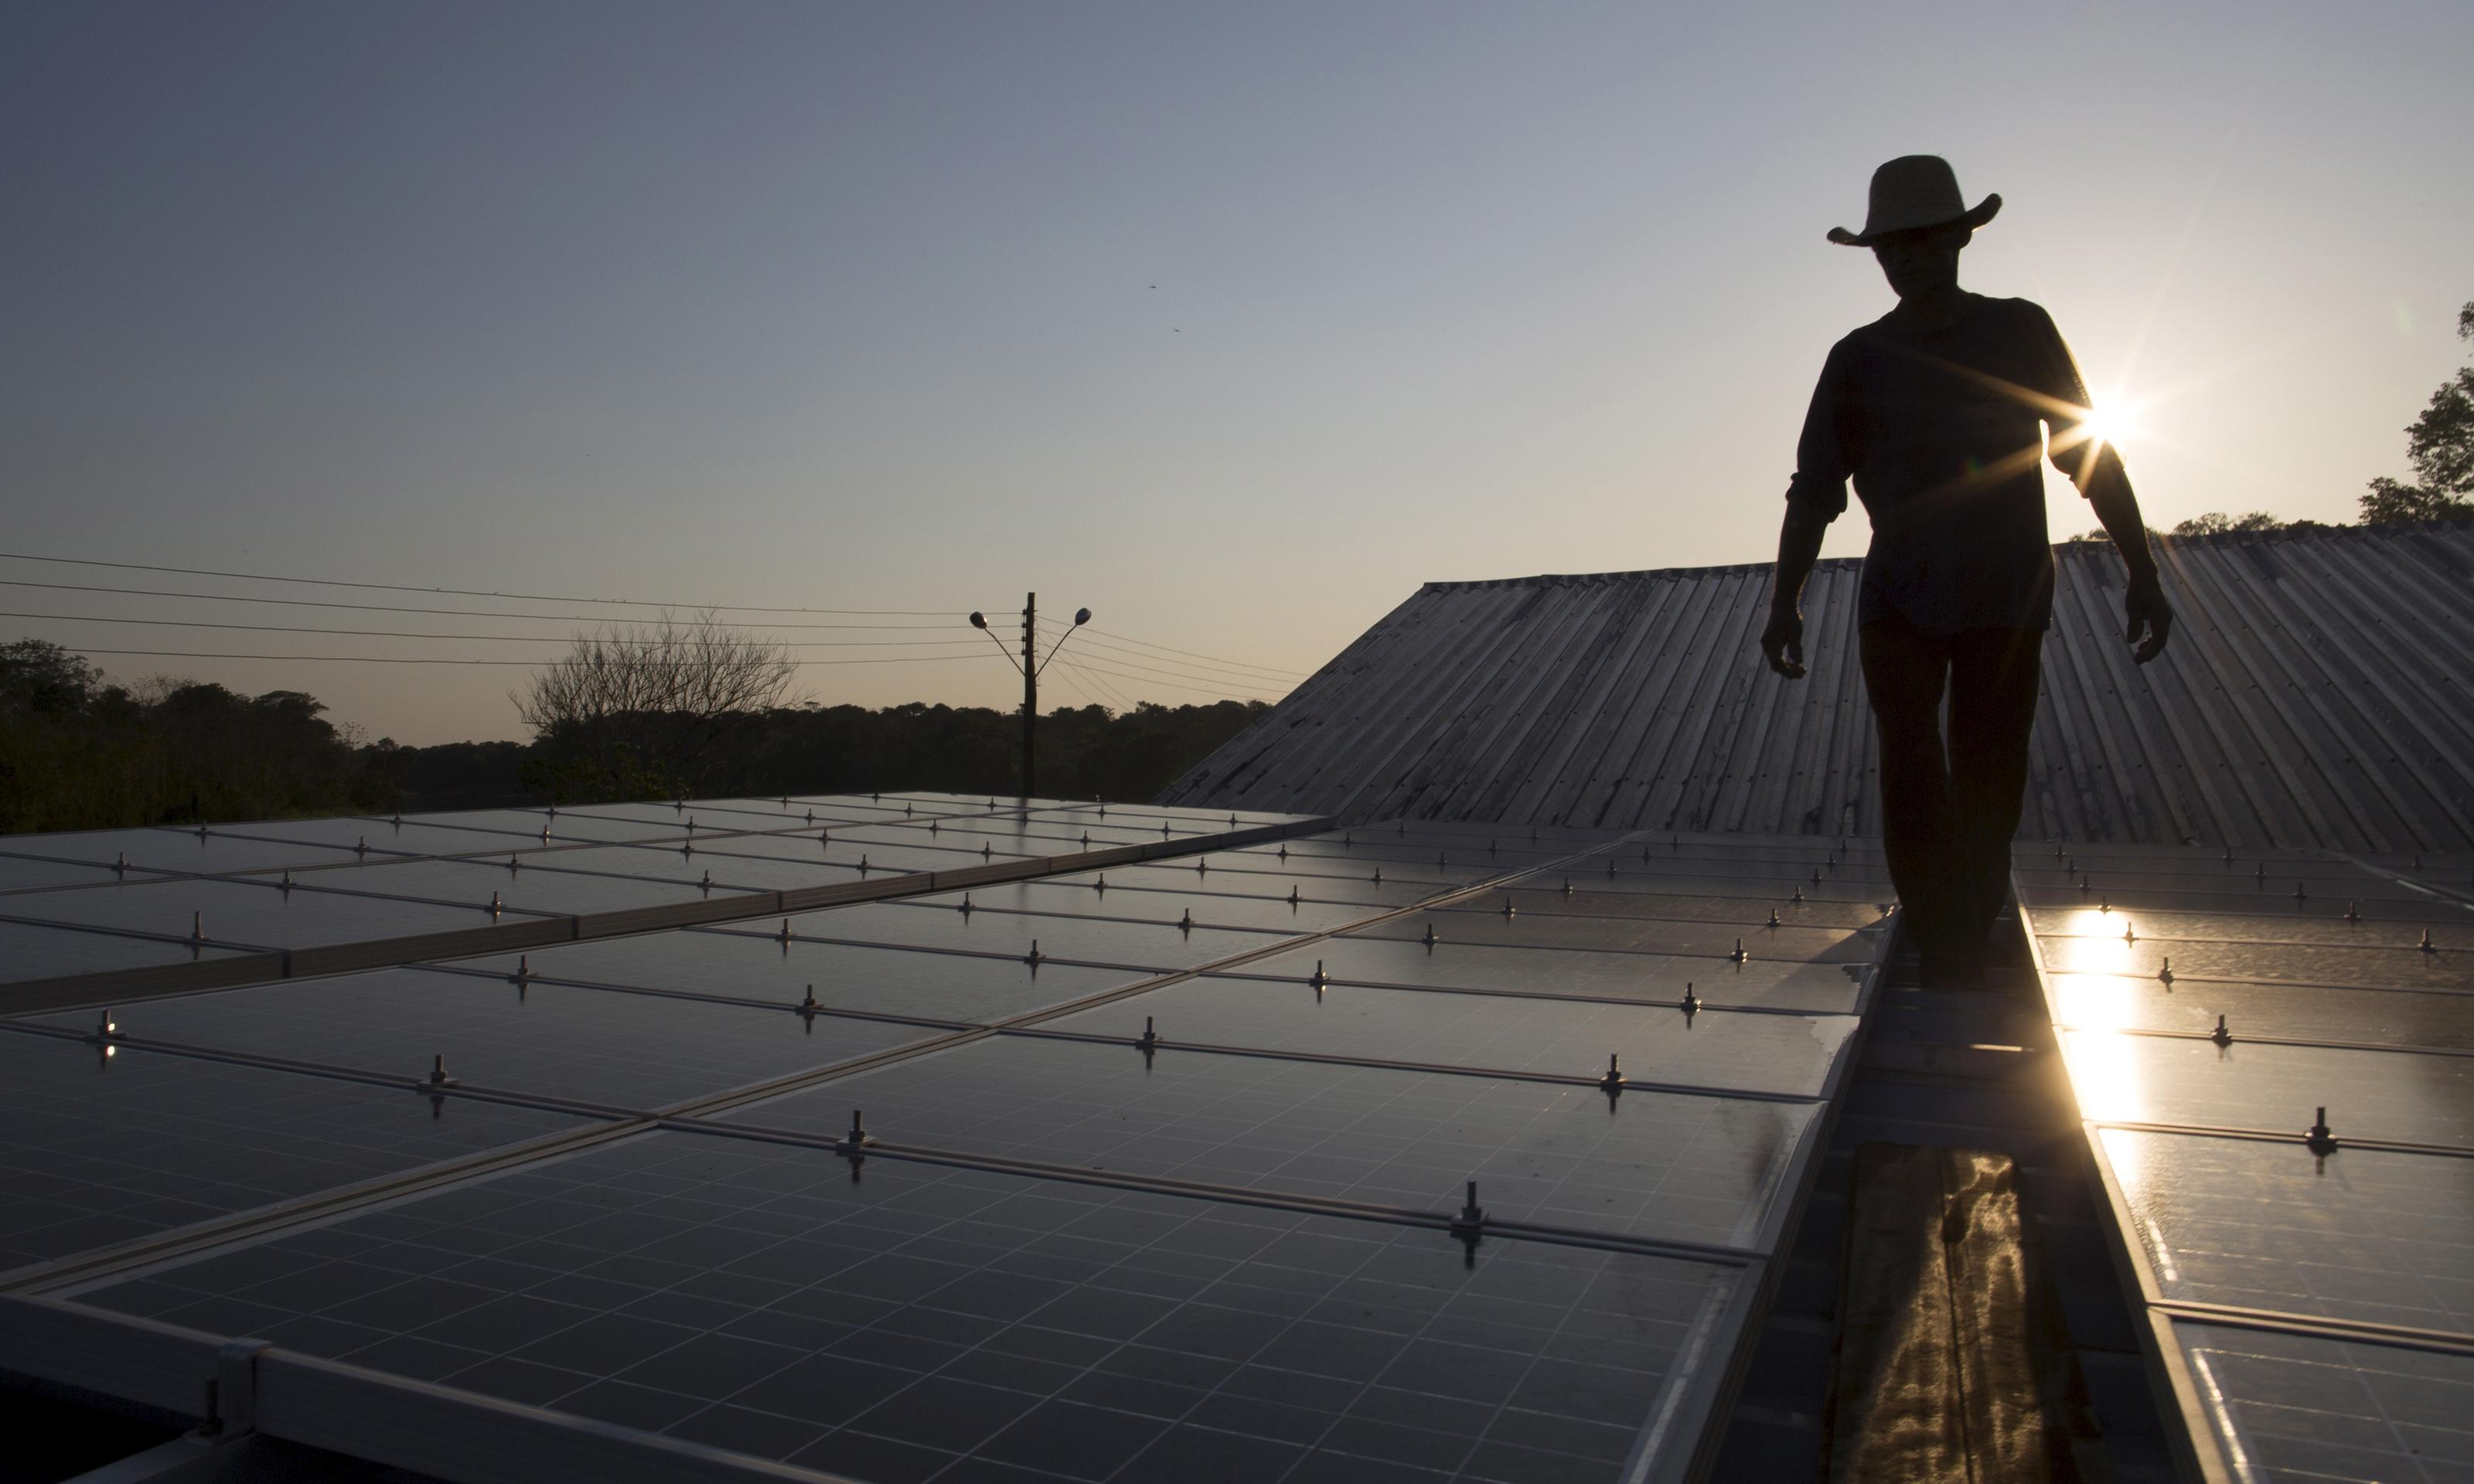 A person with a cowboy hat on solar panels